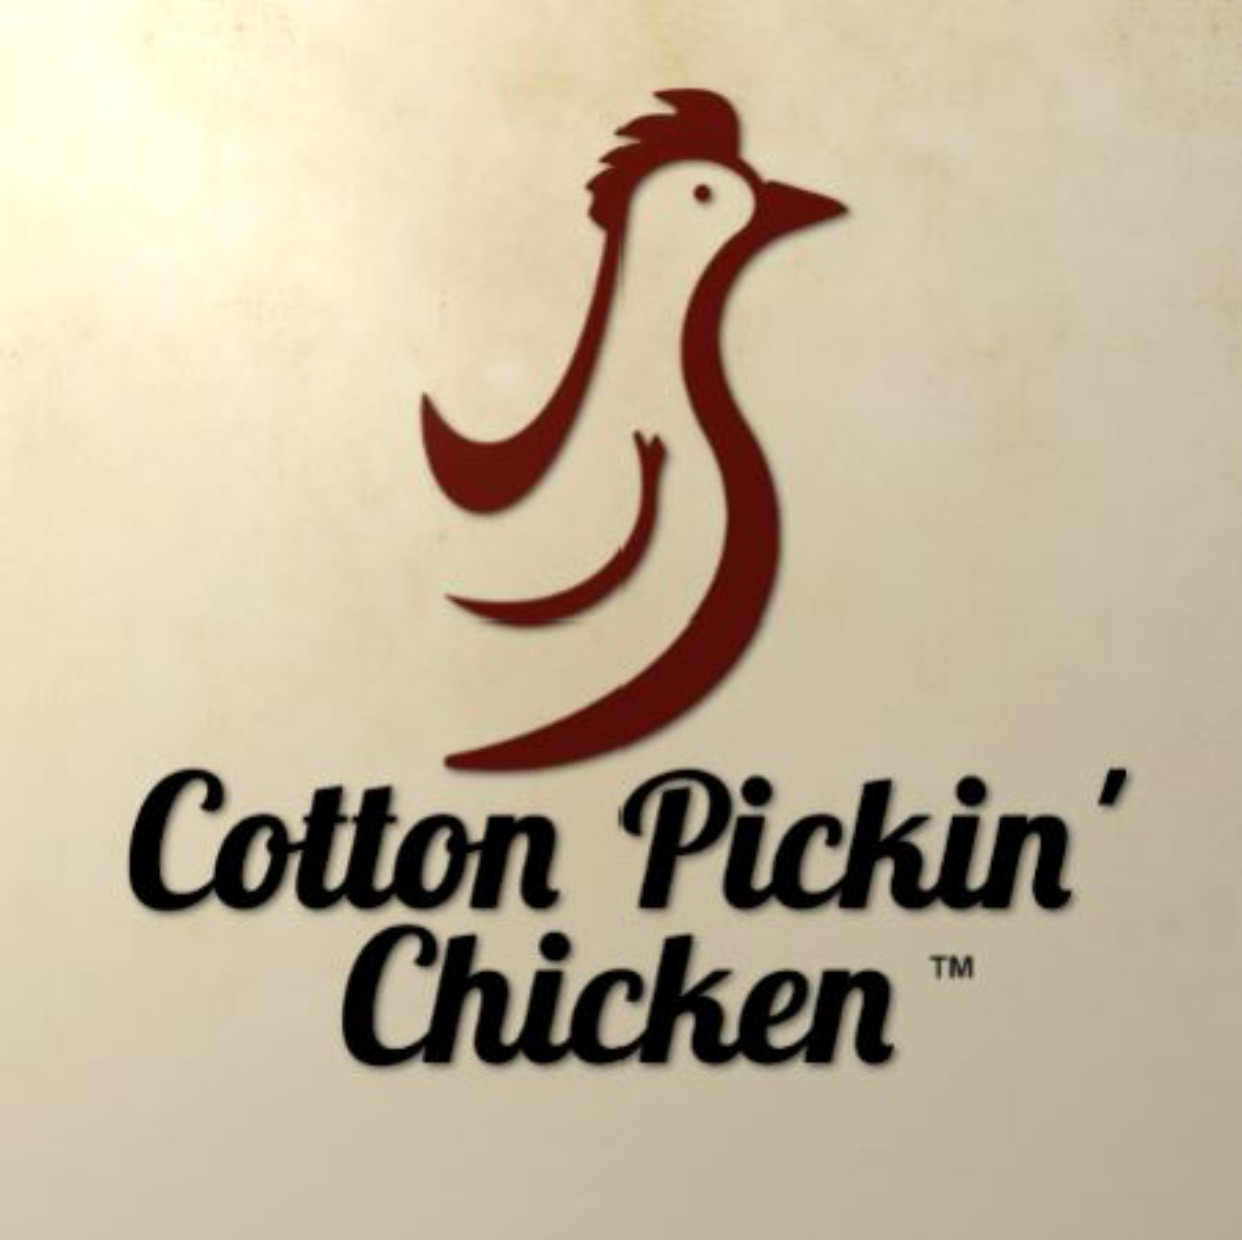 Cotton Pickin Chicken